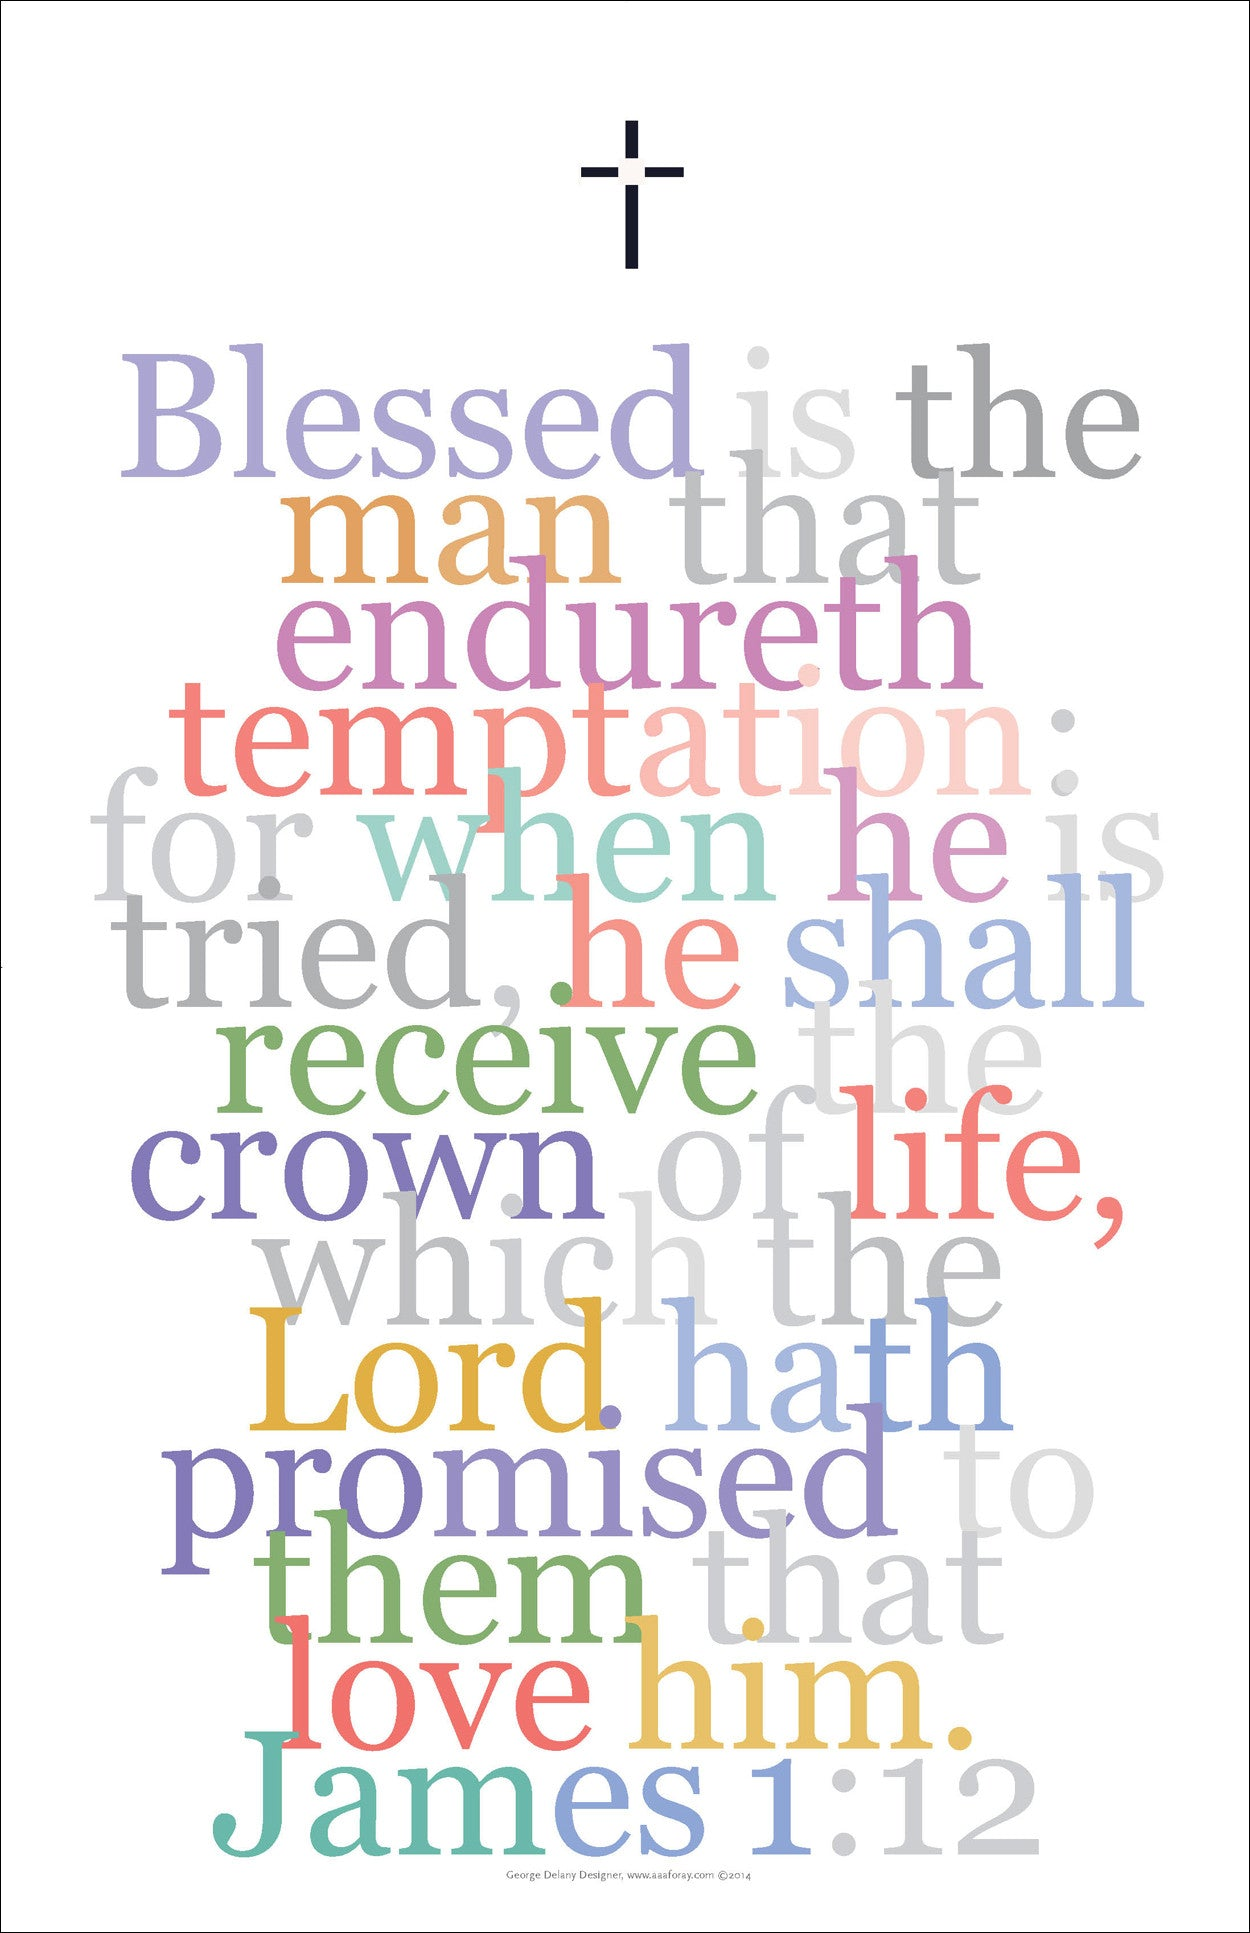 "Bible Digital Art Print #28, James 1:12 ""Blessed is the man that endureth temptation..."""